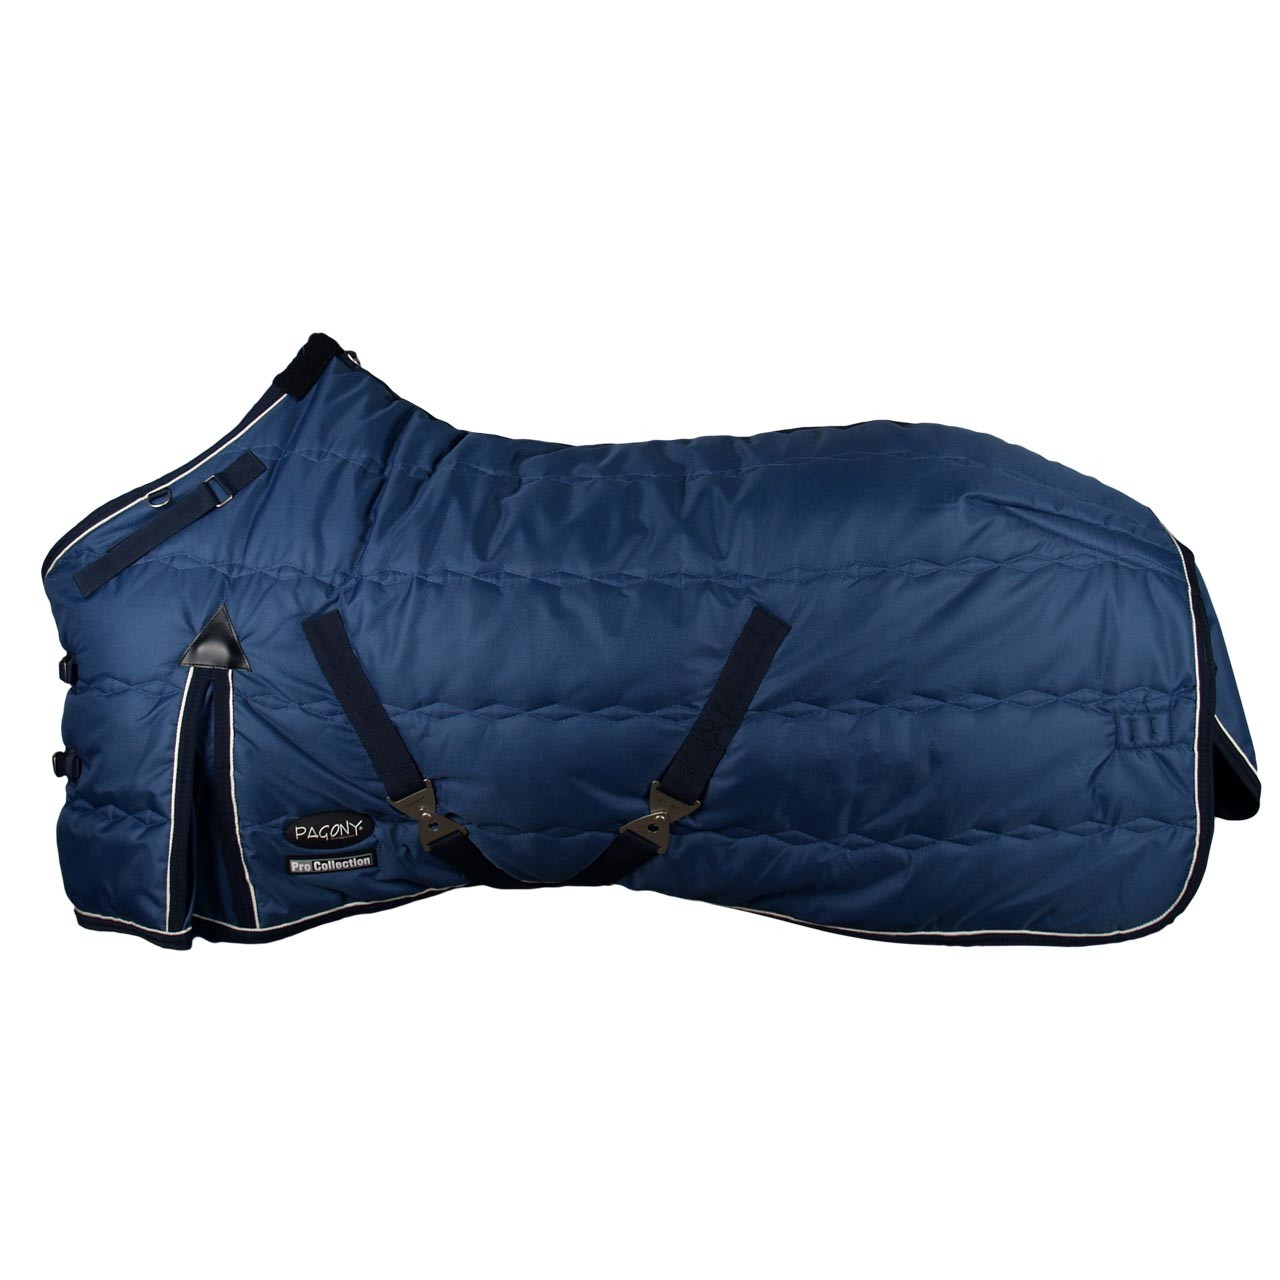 Pagony Pro stable blauw maat:205